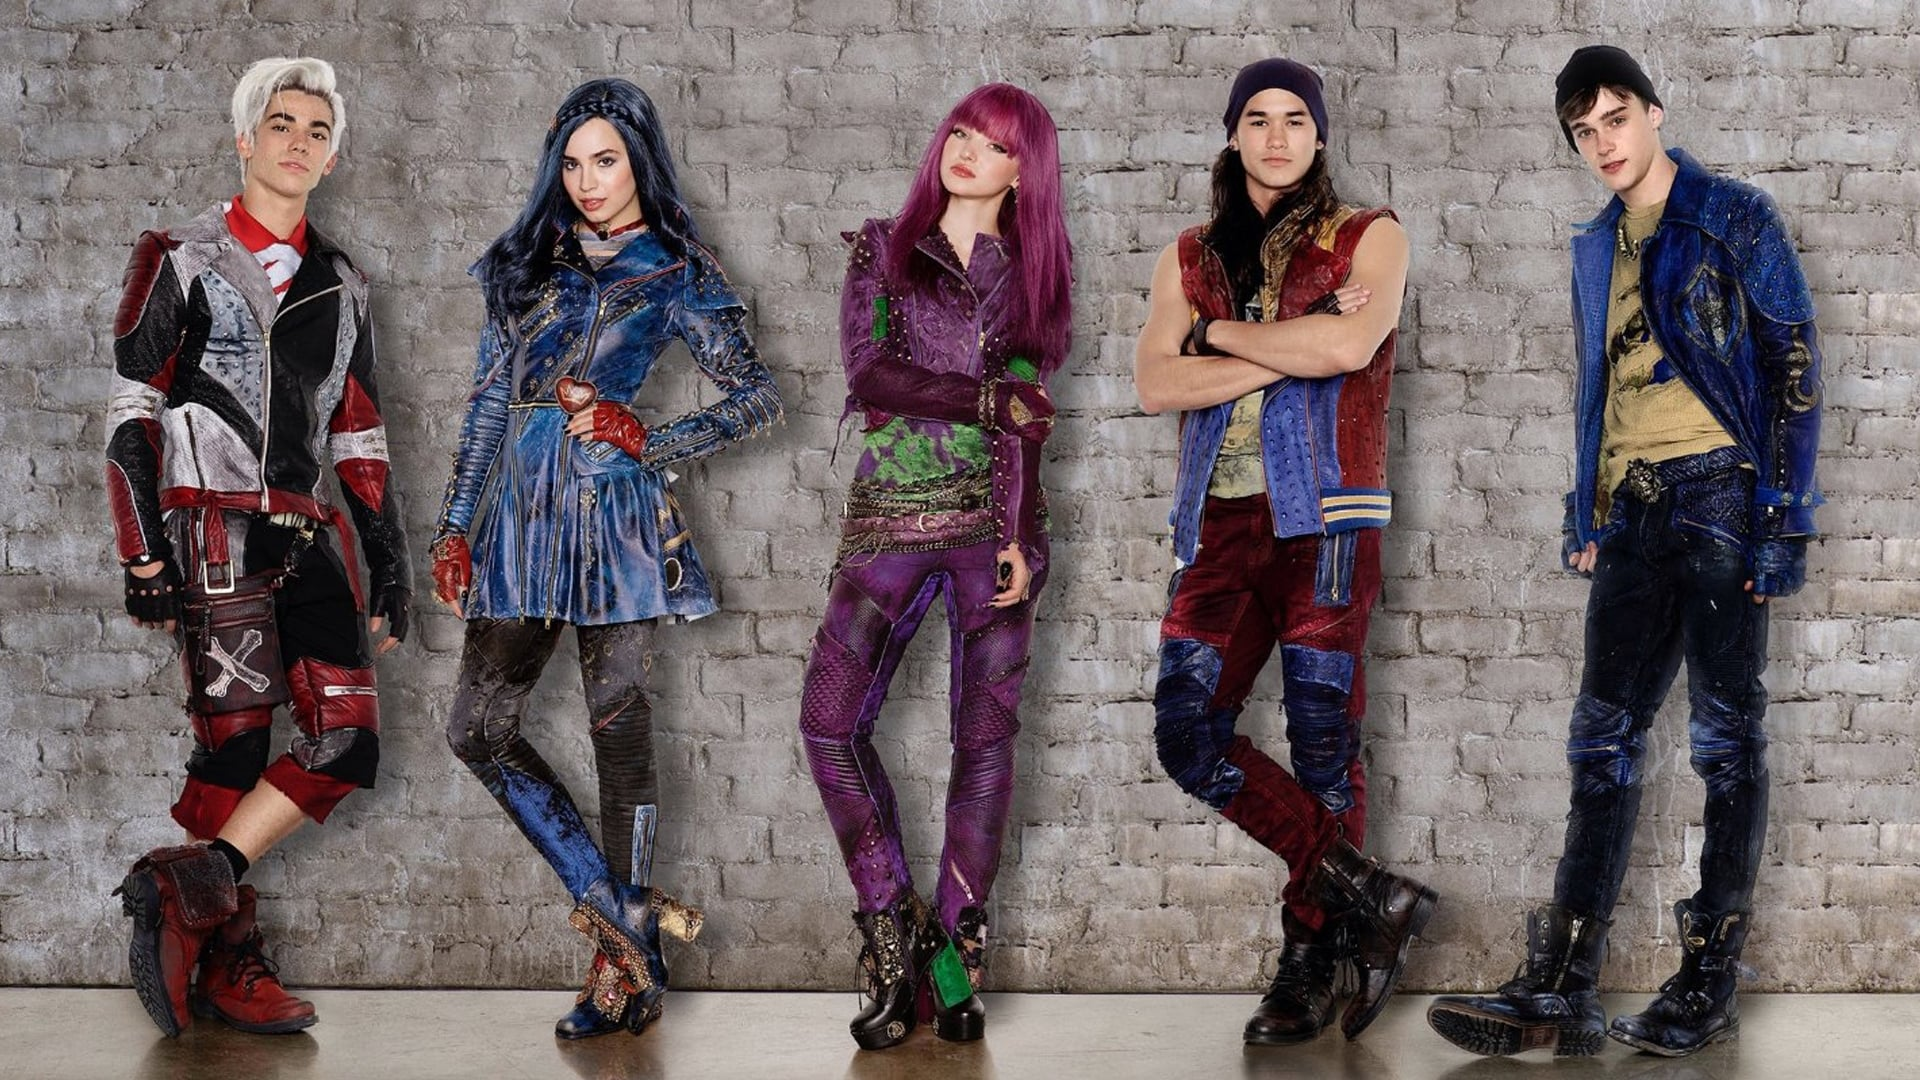 Descendants 3 is coming in 2019 Disney Channel makes it official with a teaser release Disney Channel confirmed a third edition of the popular movie